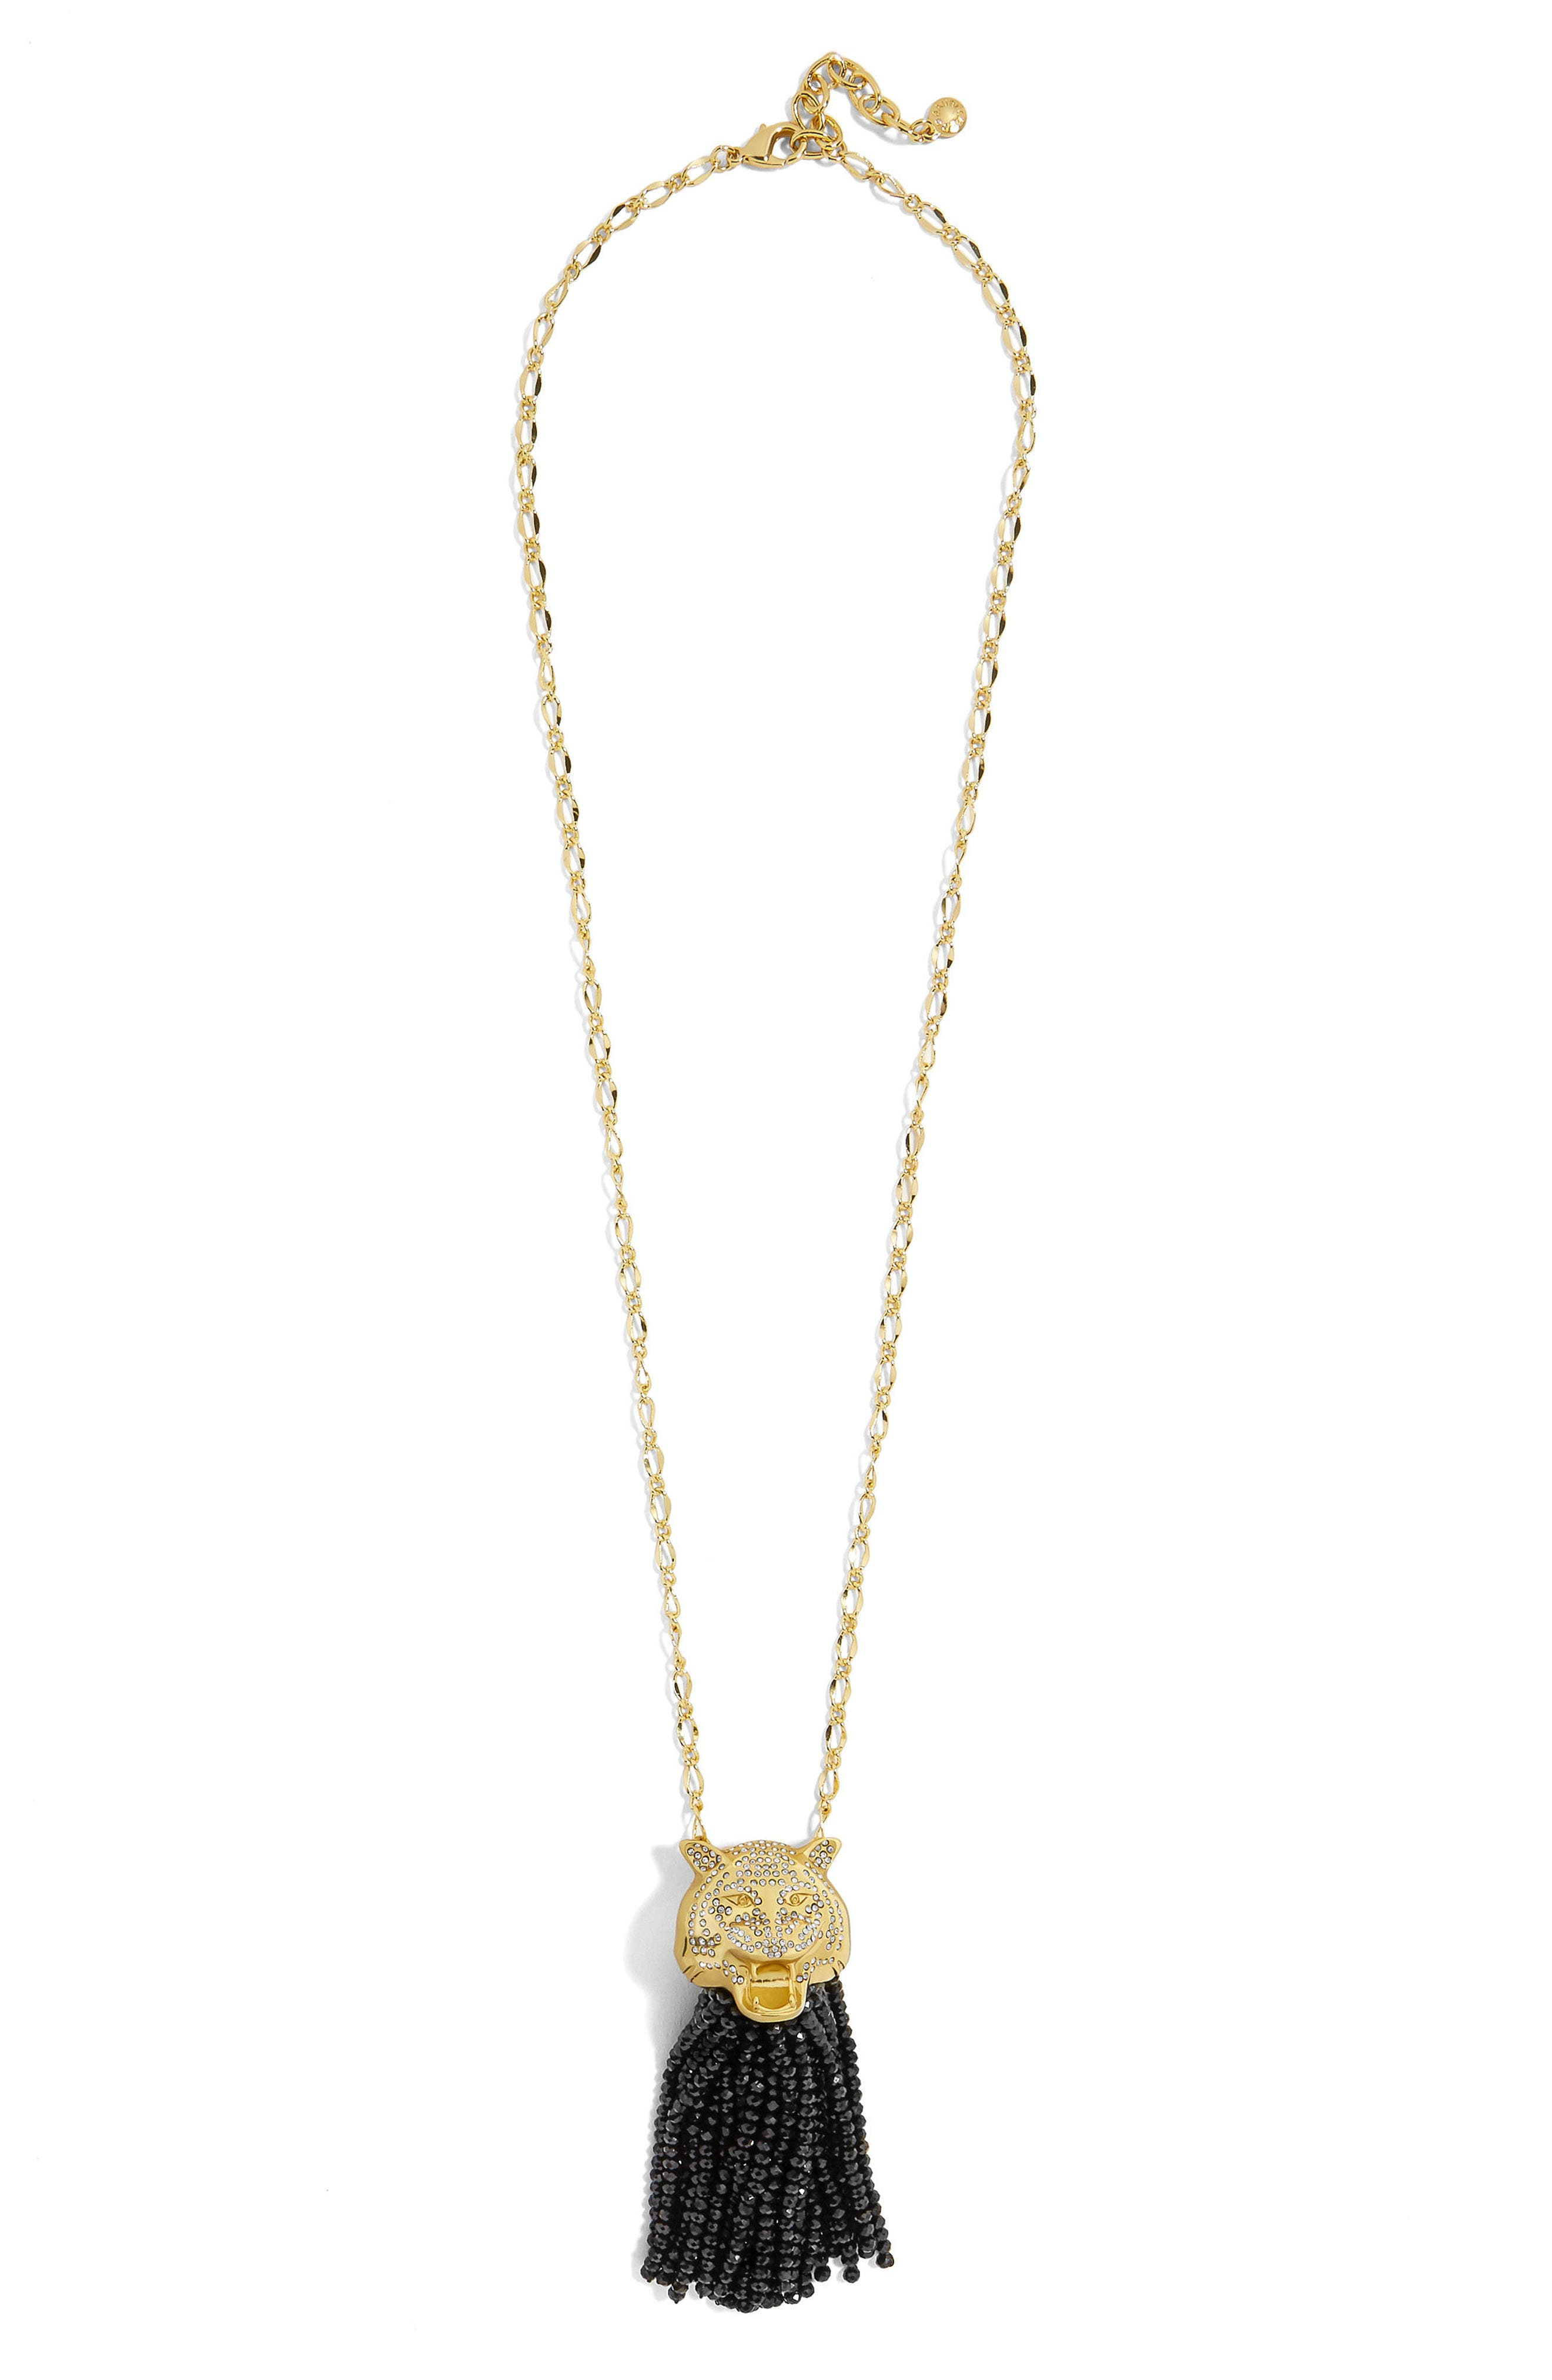 BAUBLEBAR Jaguar Pendant Necklace